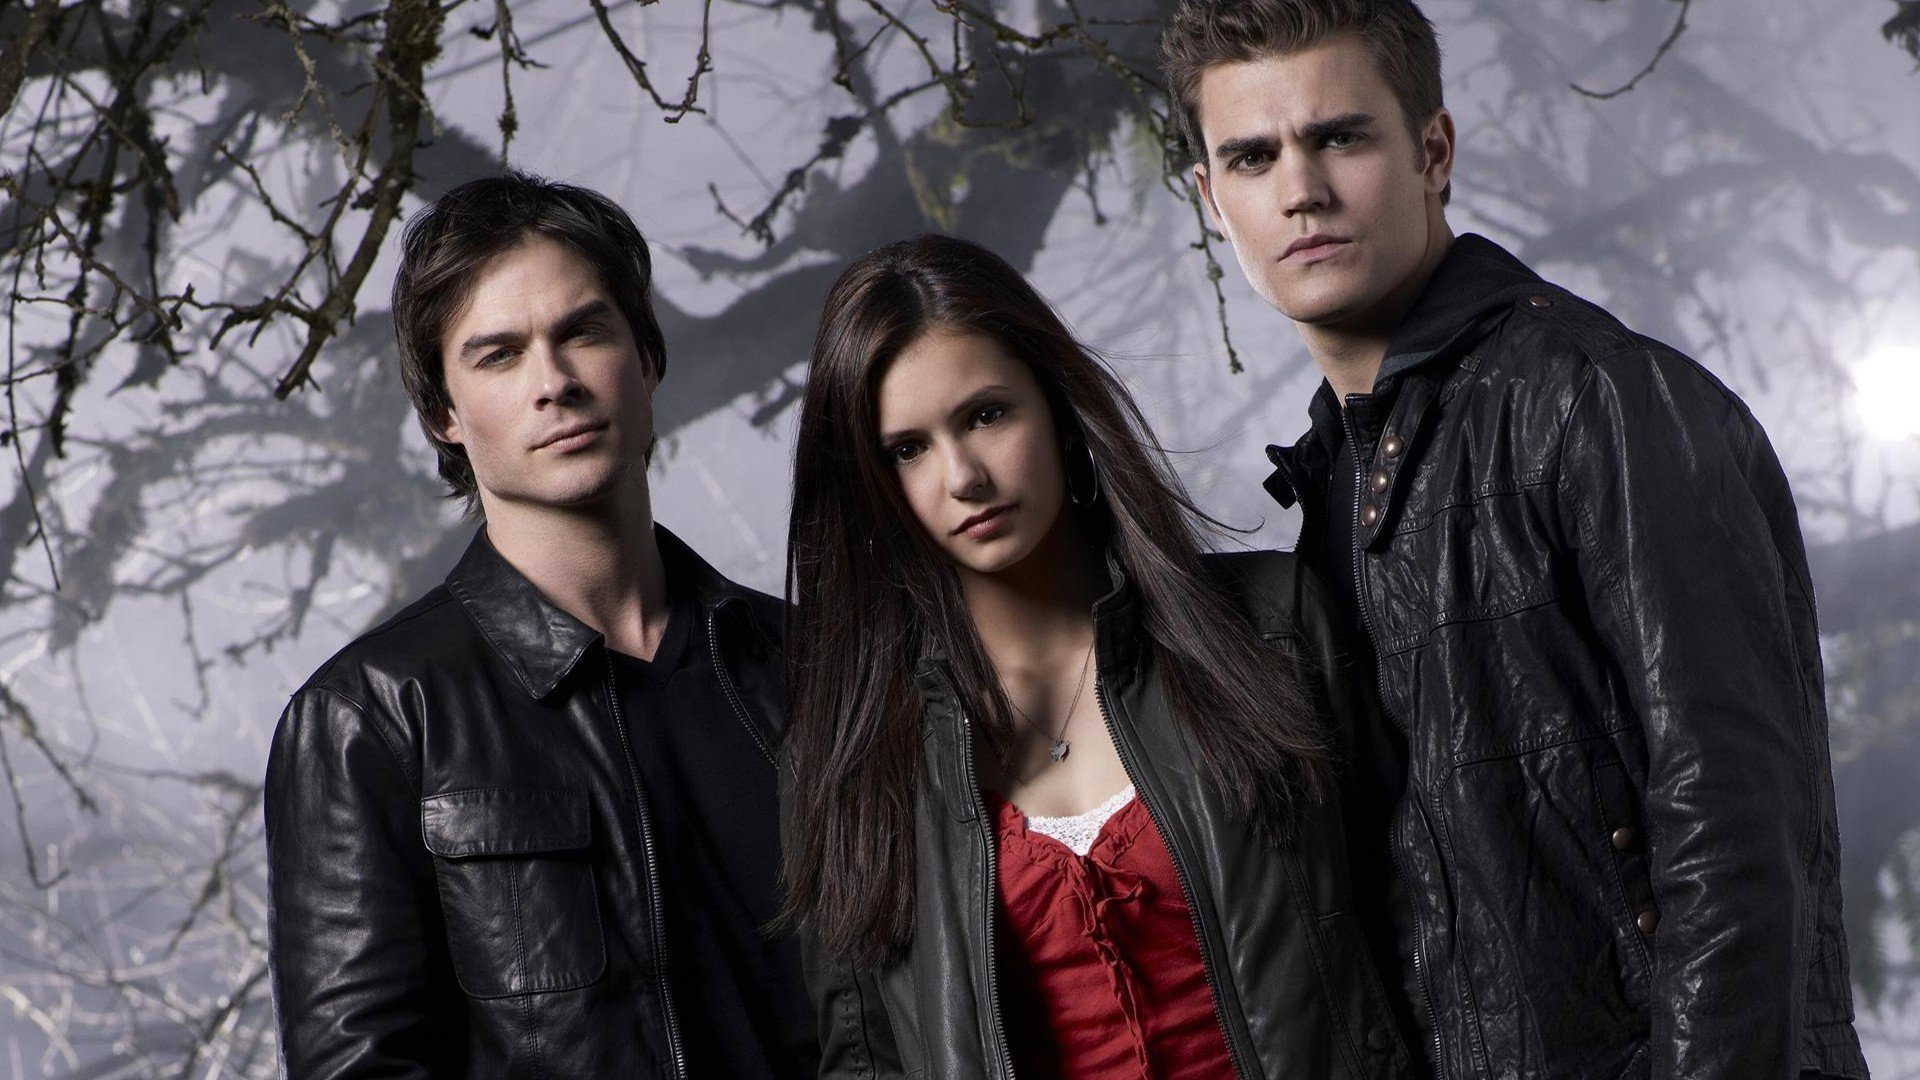 Pamietniki wampirow, The Vampire Diaries 054 Ian Somerhalder, Nina Dobrev, Paul Wesley